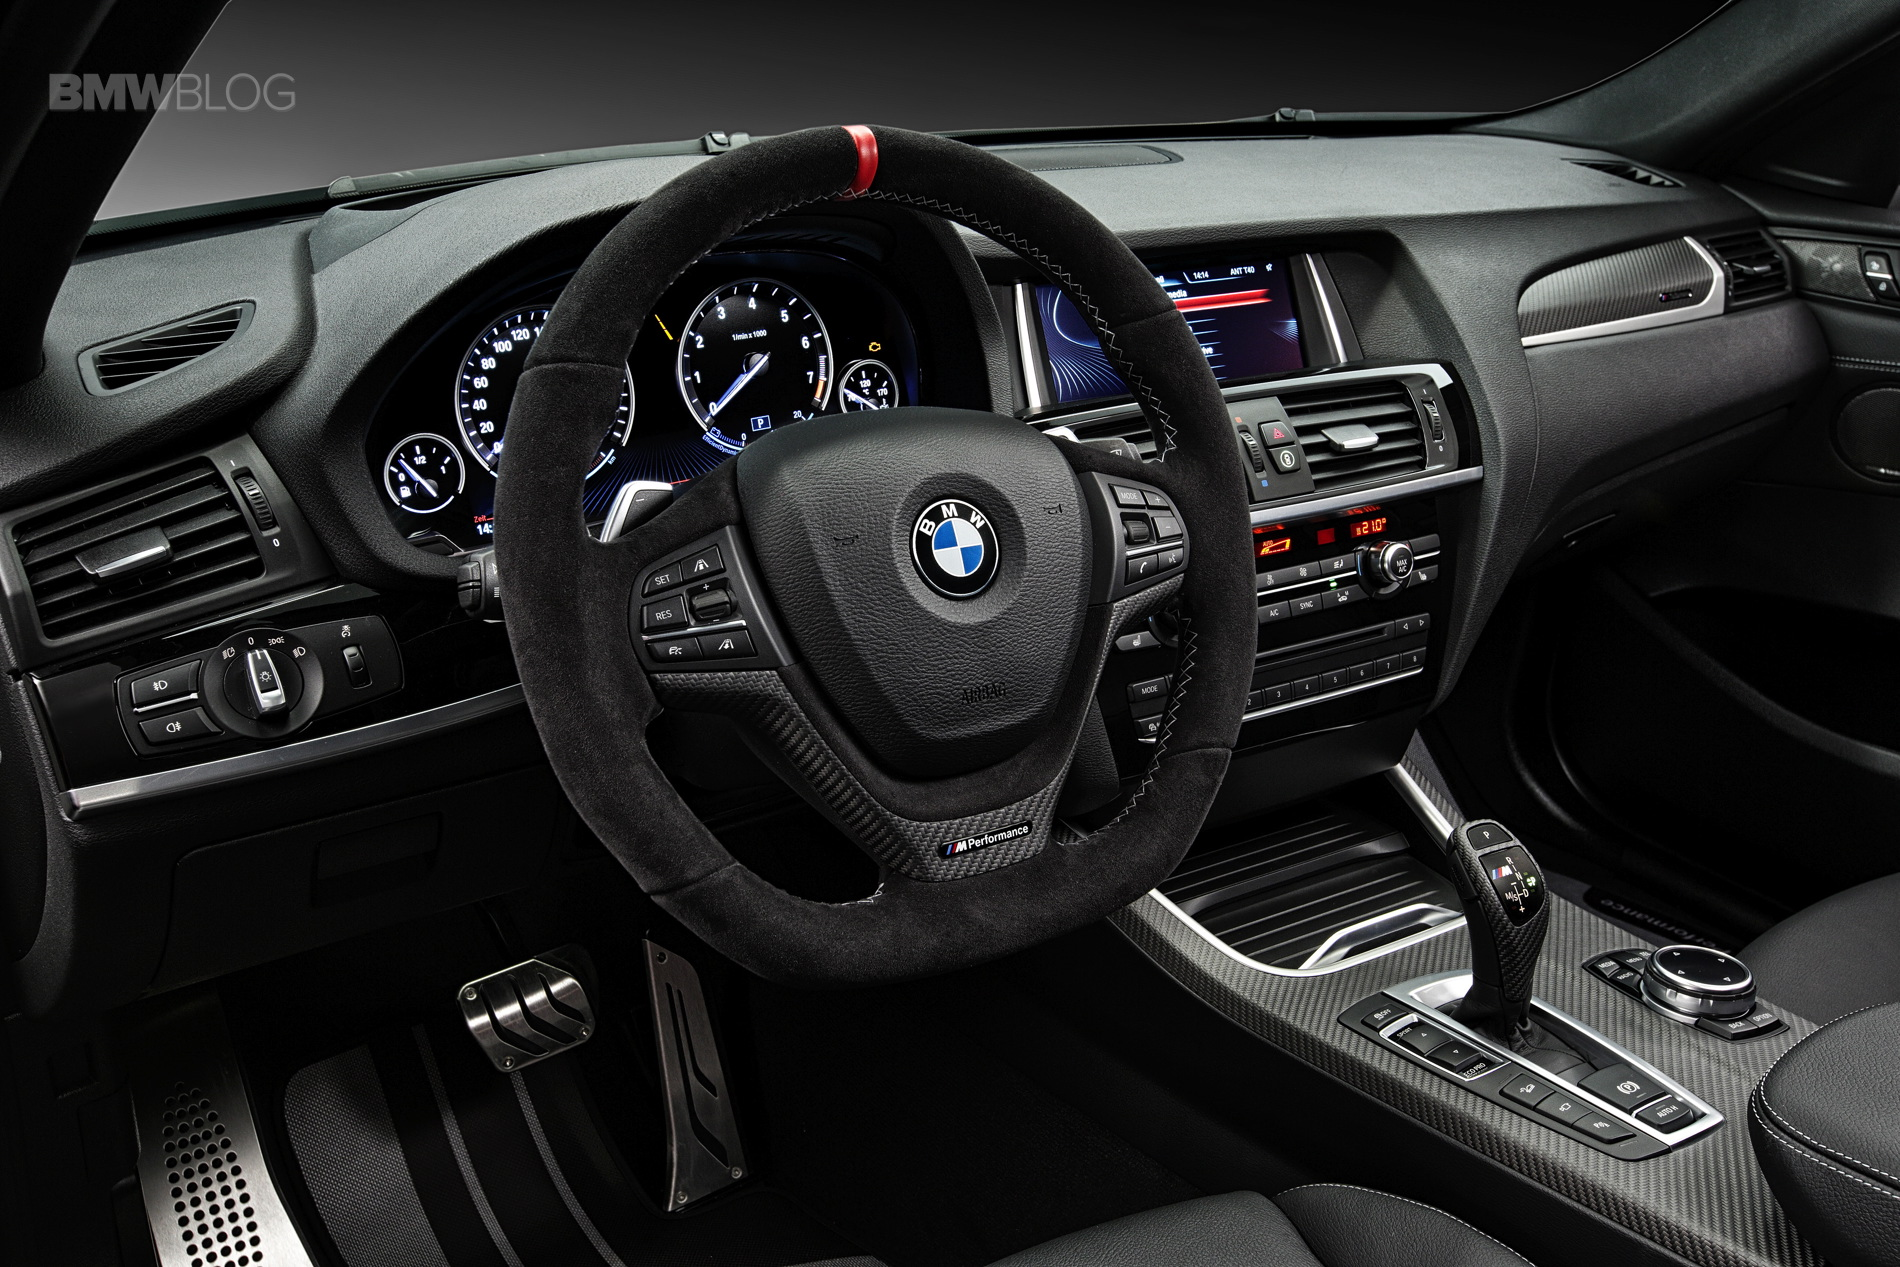 Bmw X3 And Bmw X4 M Performance Power Kit And M Performance Parts